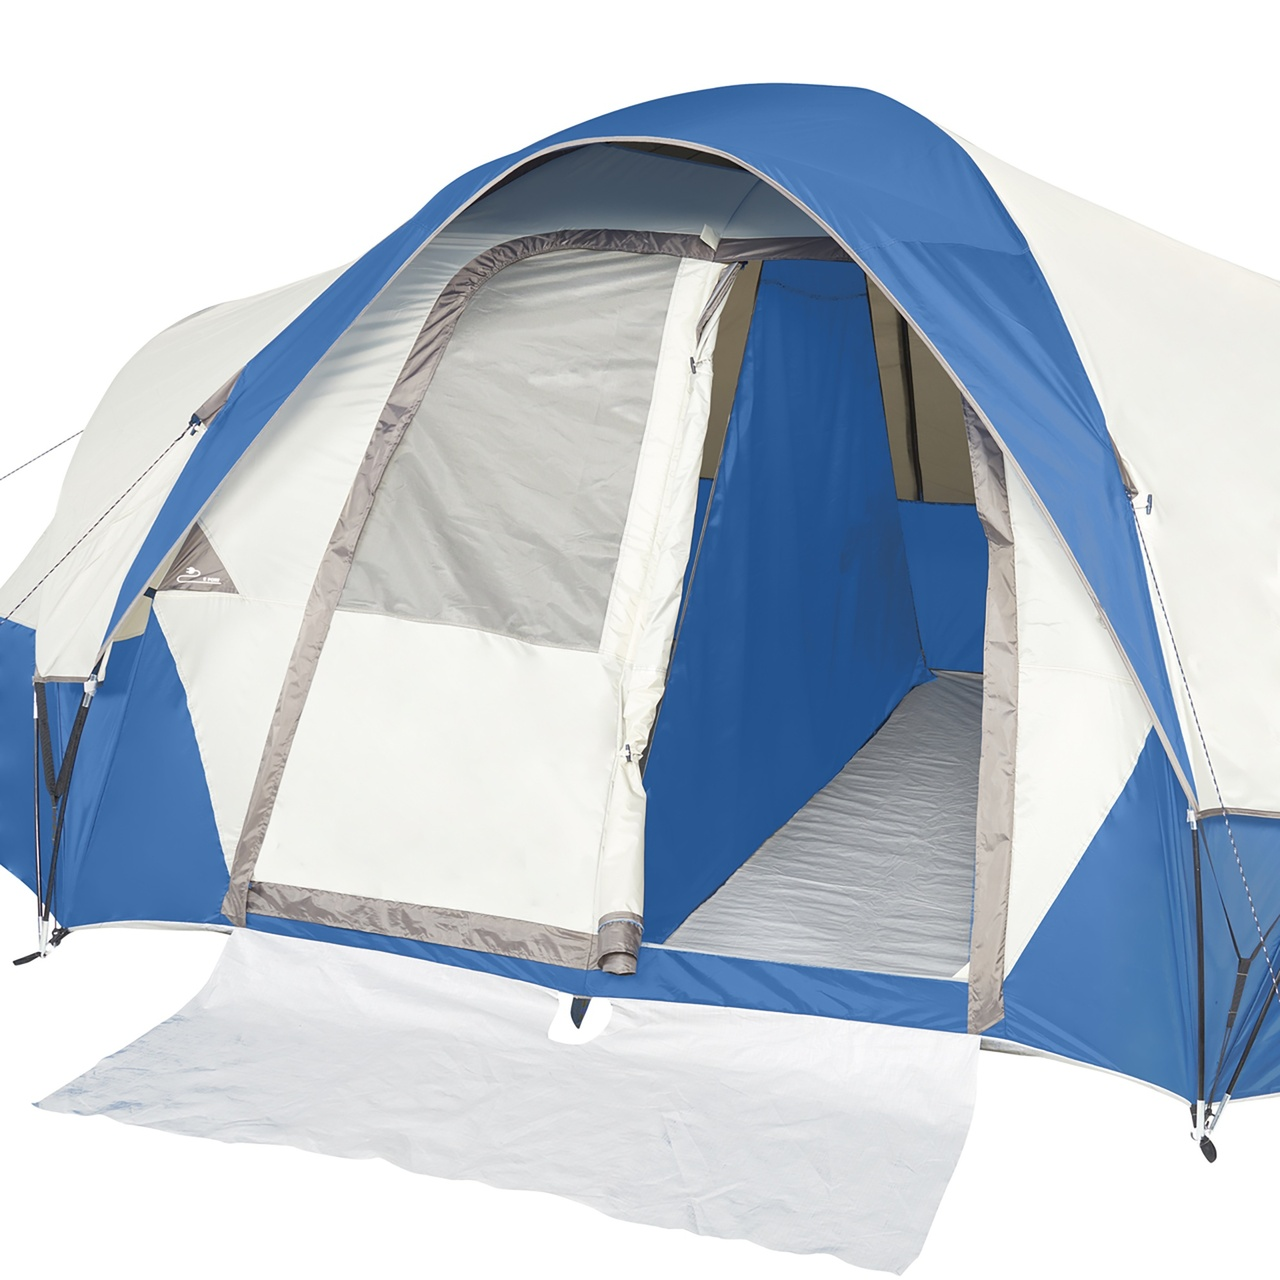 Wenzel Pinyon 10 Person Dome Tent, blue/white, showing front door